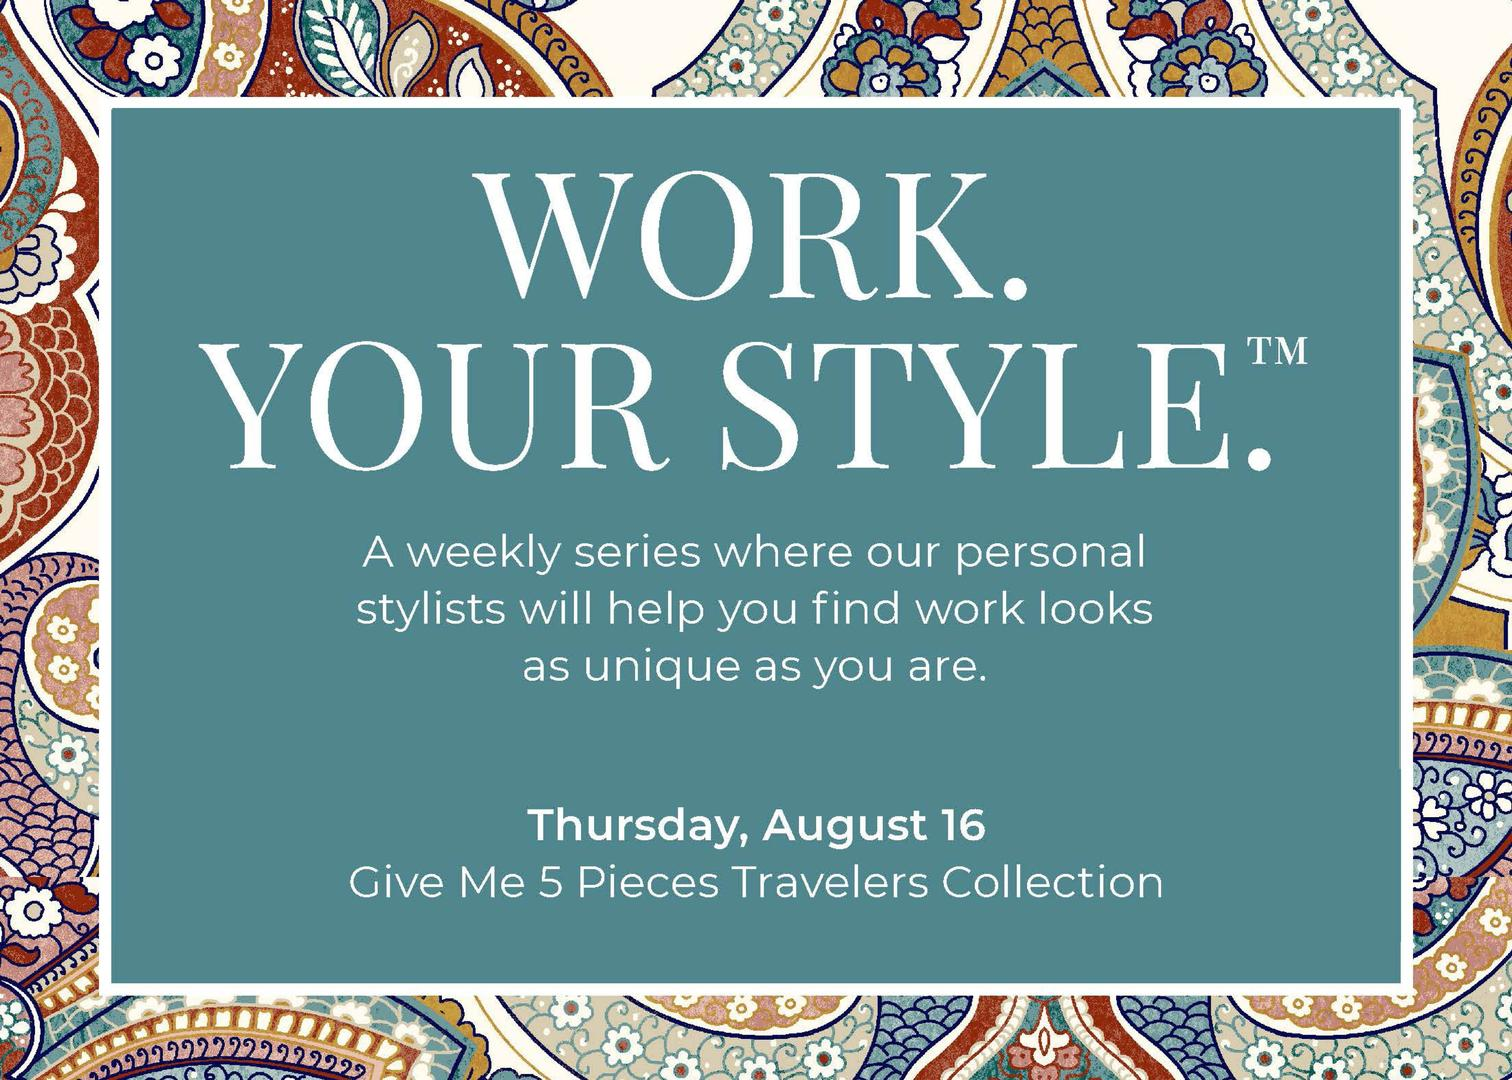 Waugh Chapel Towne Centre, Work You Style- Give Me 5 Pieces Travelers Collection  Event Image: 1405 S. Main Chapel Way, Suite 111, Gambrills, MD 21054, US